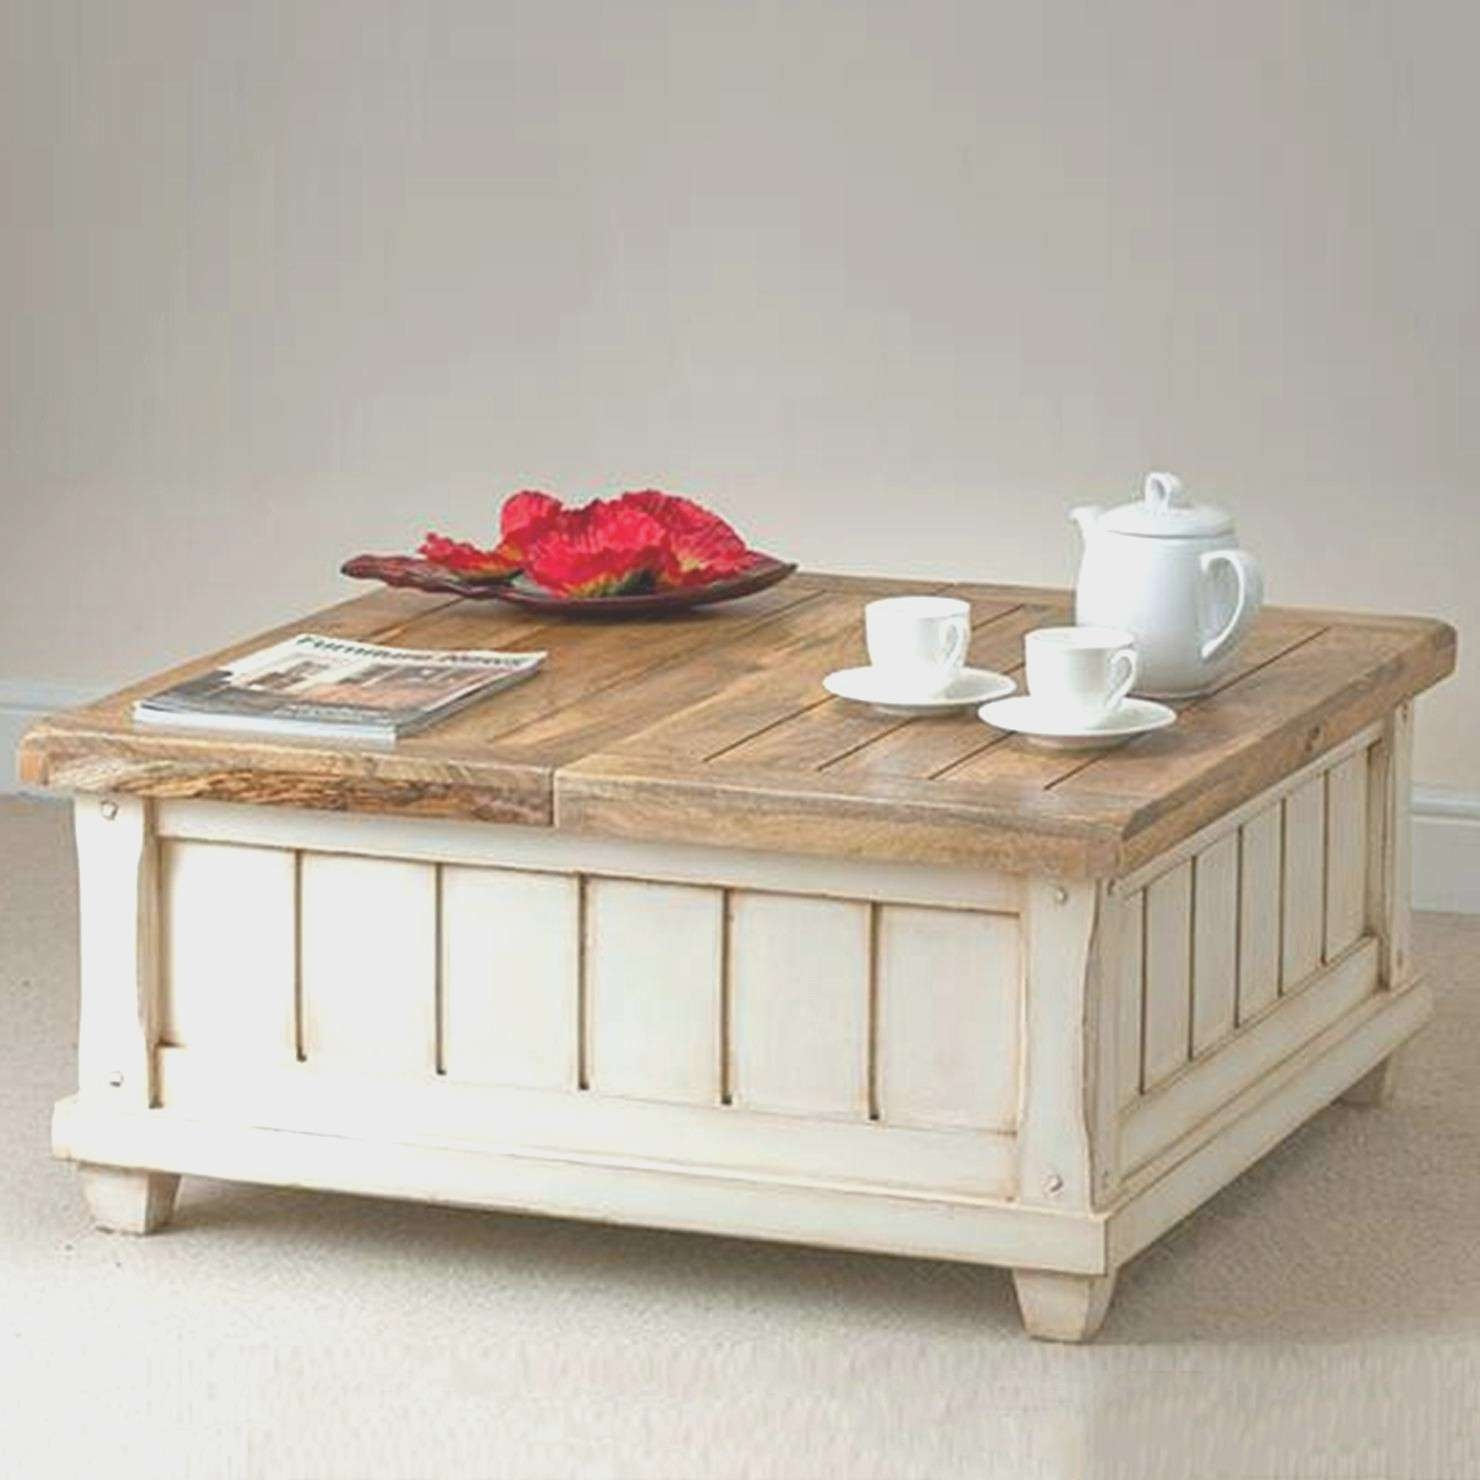 20 Best Ideas of White Coffee Tables With Baskets